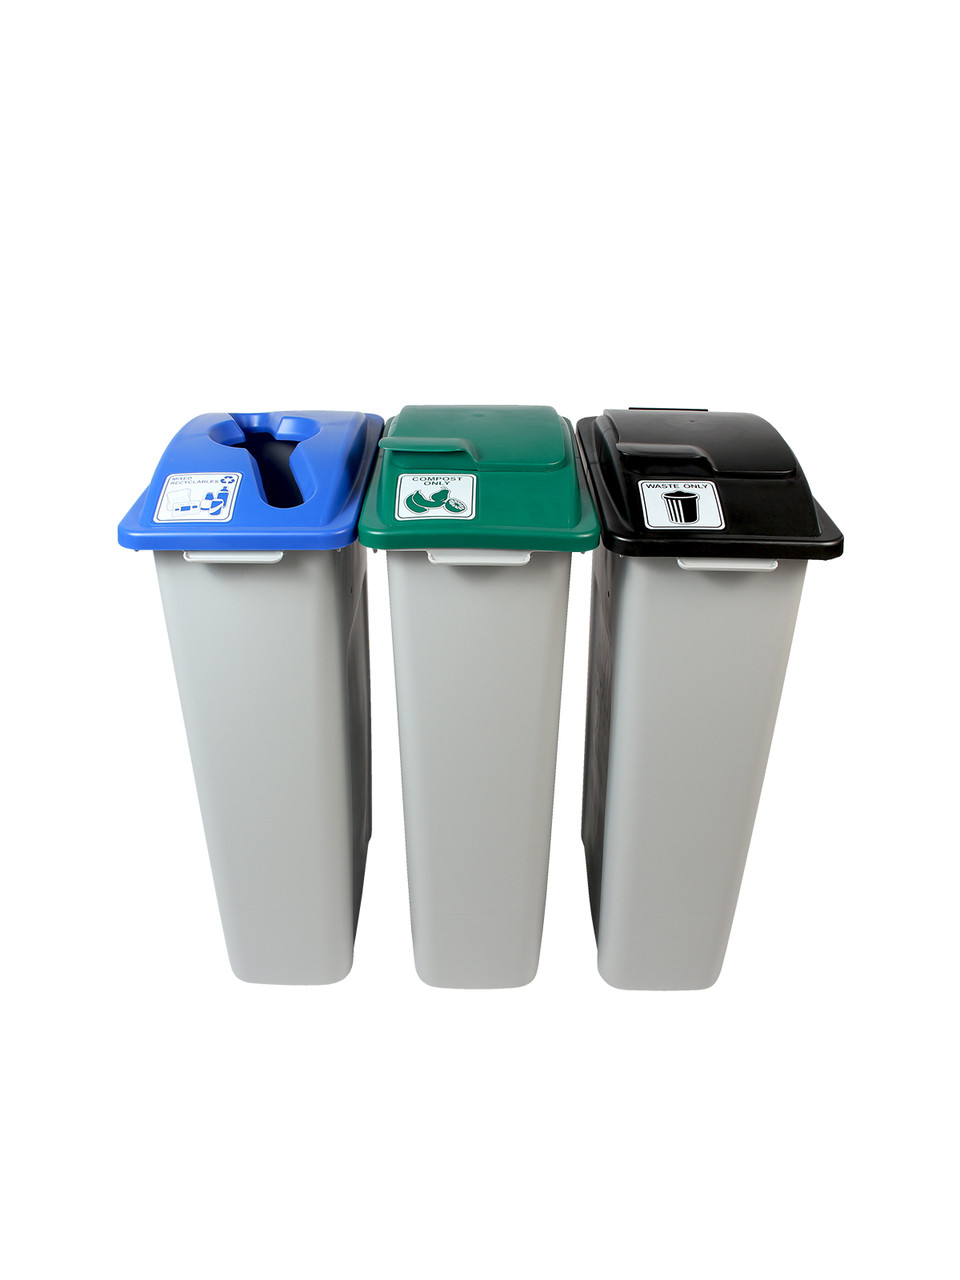 69 Gallon Simple Sort Skinny Recycle Bin Center 8105048-255 (Mixed, Compost Lift Lid, Waste Lift Lid)